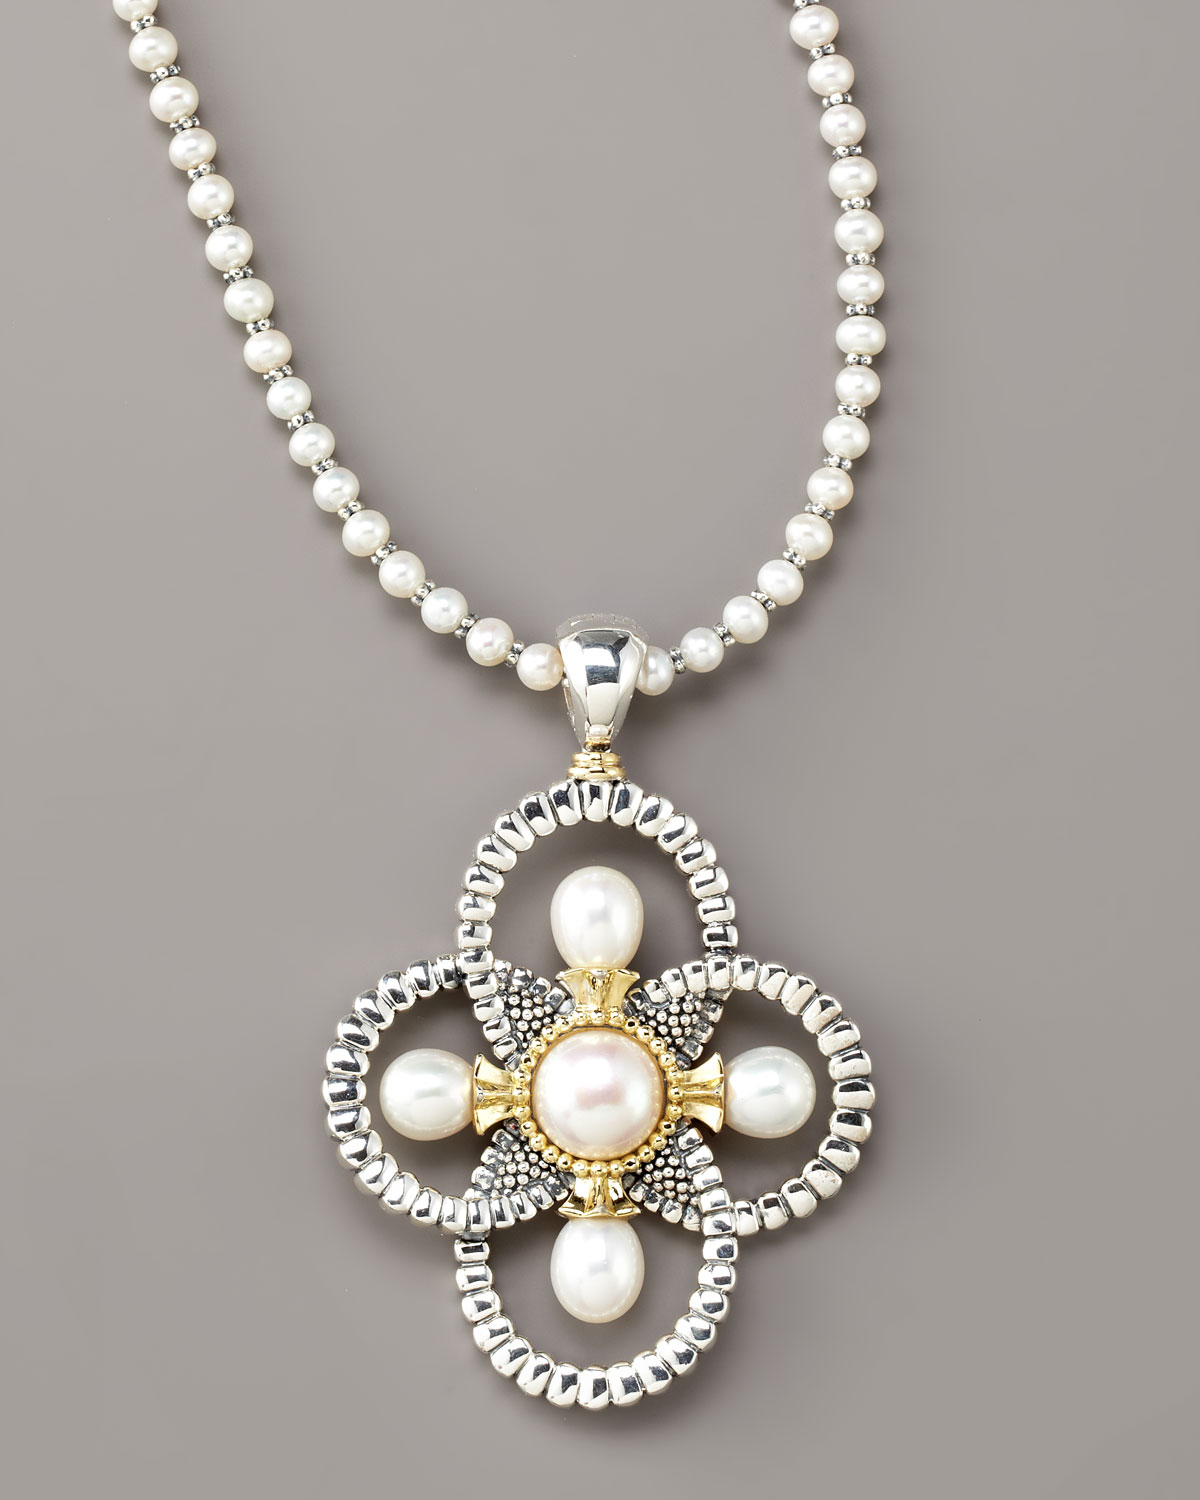 Lyst lagos luna pearl quatrefoil pendant necklace in white gallery mozeypictures Images